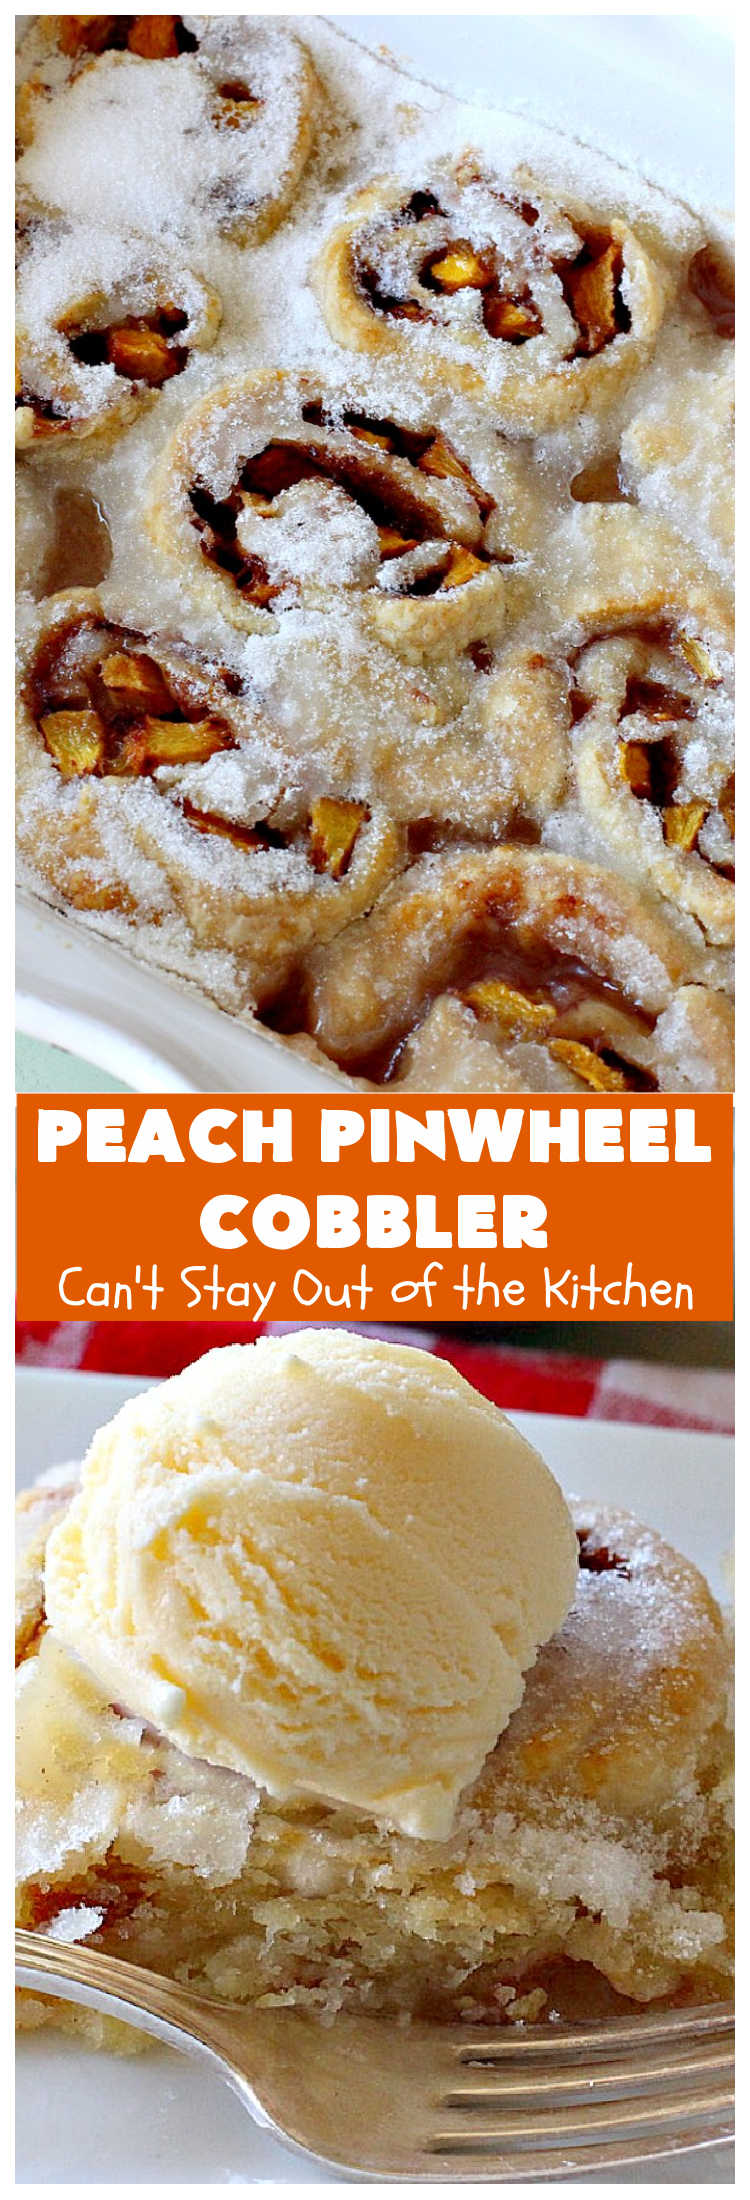 Peach Pinwheel Cobbler | Can't Stay Out of the Kitchen | this is one fantastic #PeachCobbler! #Peaches are wrapped up in dough pinwheel fashion. Syrup is poured over top before baking. The pinwheels absorb the syrup & puff up really large. This is absolutely heavenly. Wonderful #summer #dessert. #PeachDessert #cobbler #PeachPinwheelCobbler #Canbassador #WashingtonStateFruitCommission #WashingtonStoneFruitGrowers #WashingtonStateStoneFruitGrowers